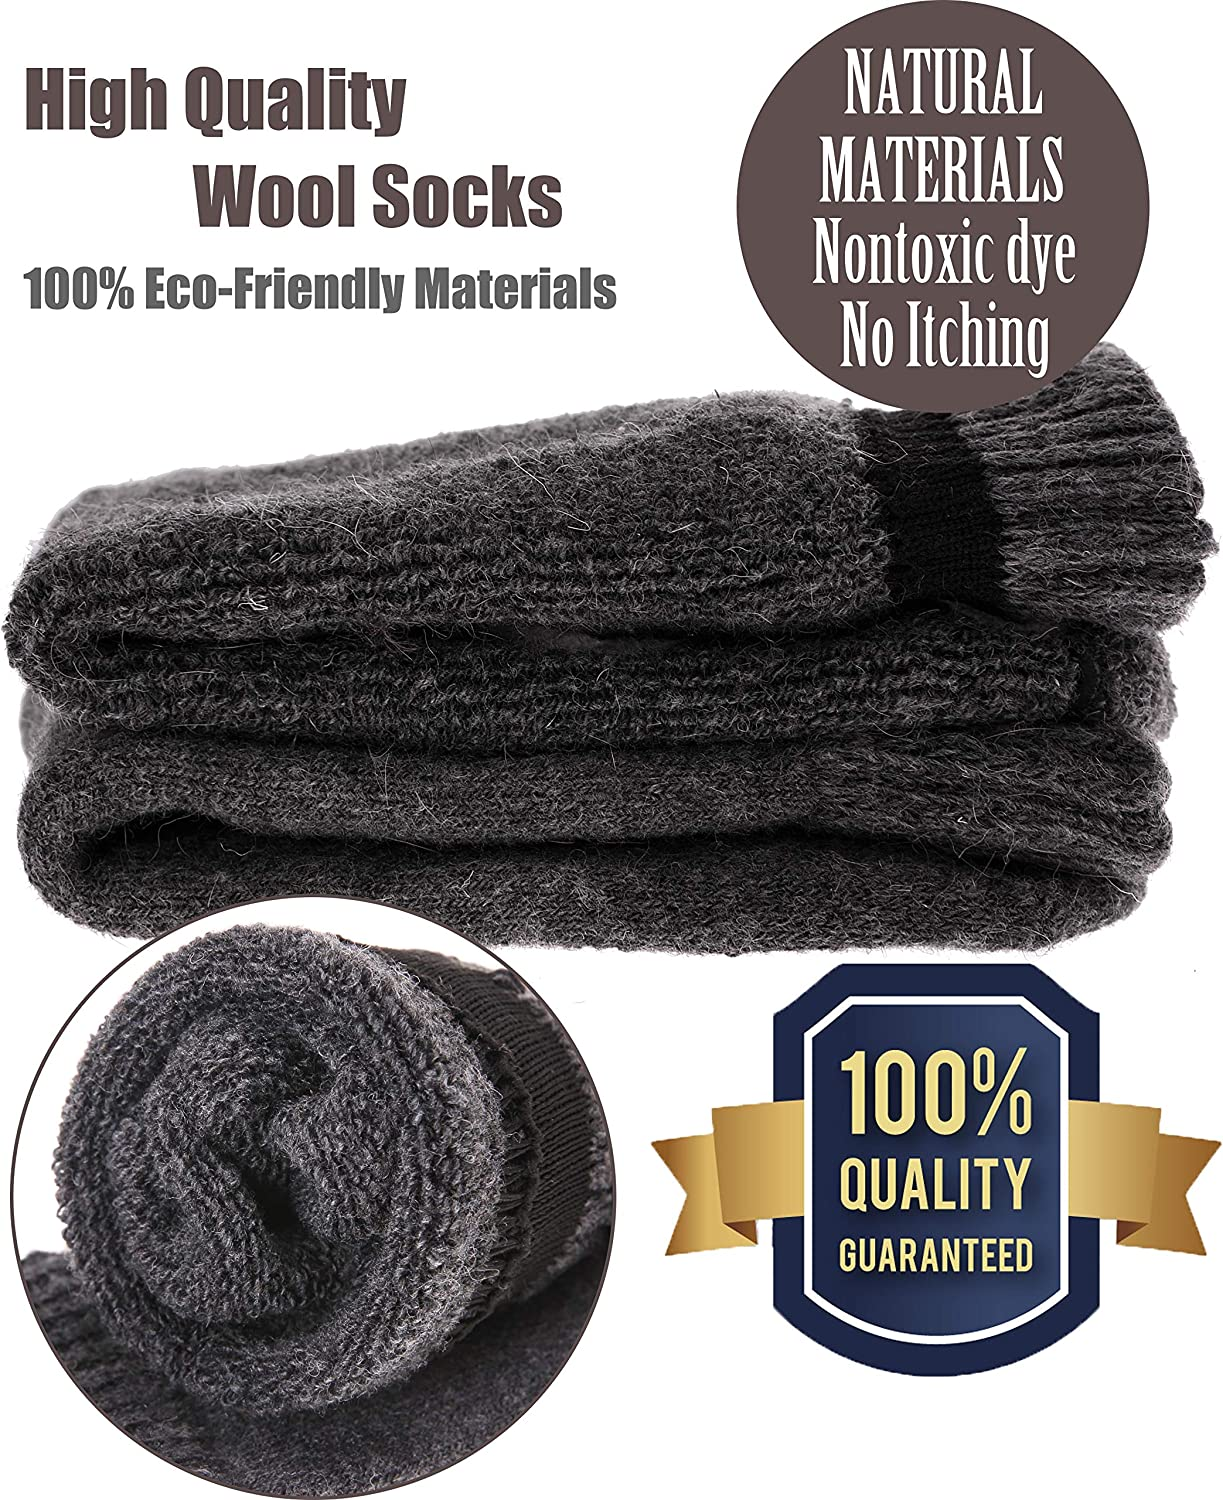 Mens Wool Socks Thermal Heavy Warm Thick Fuzzy Winter Crew Socks For Cold Weather 5 Pairs